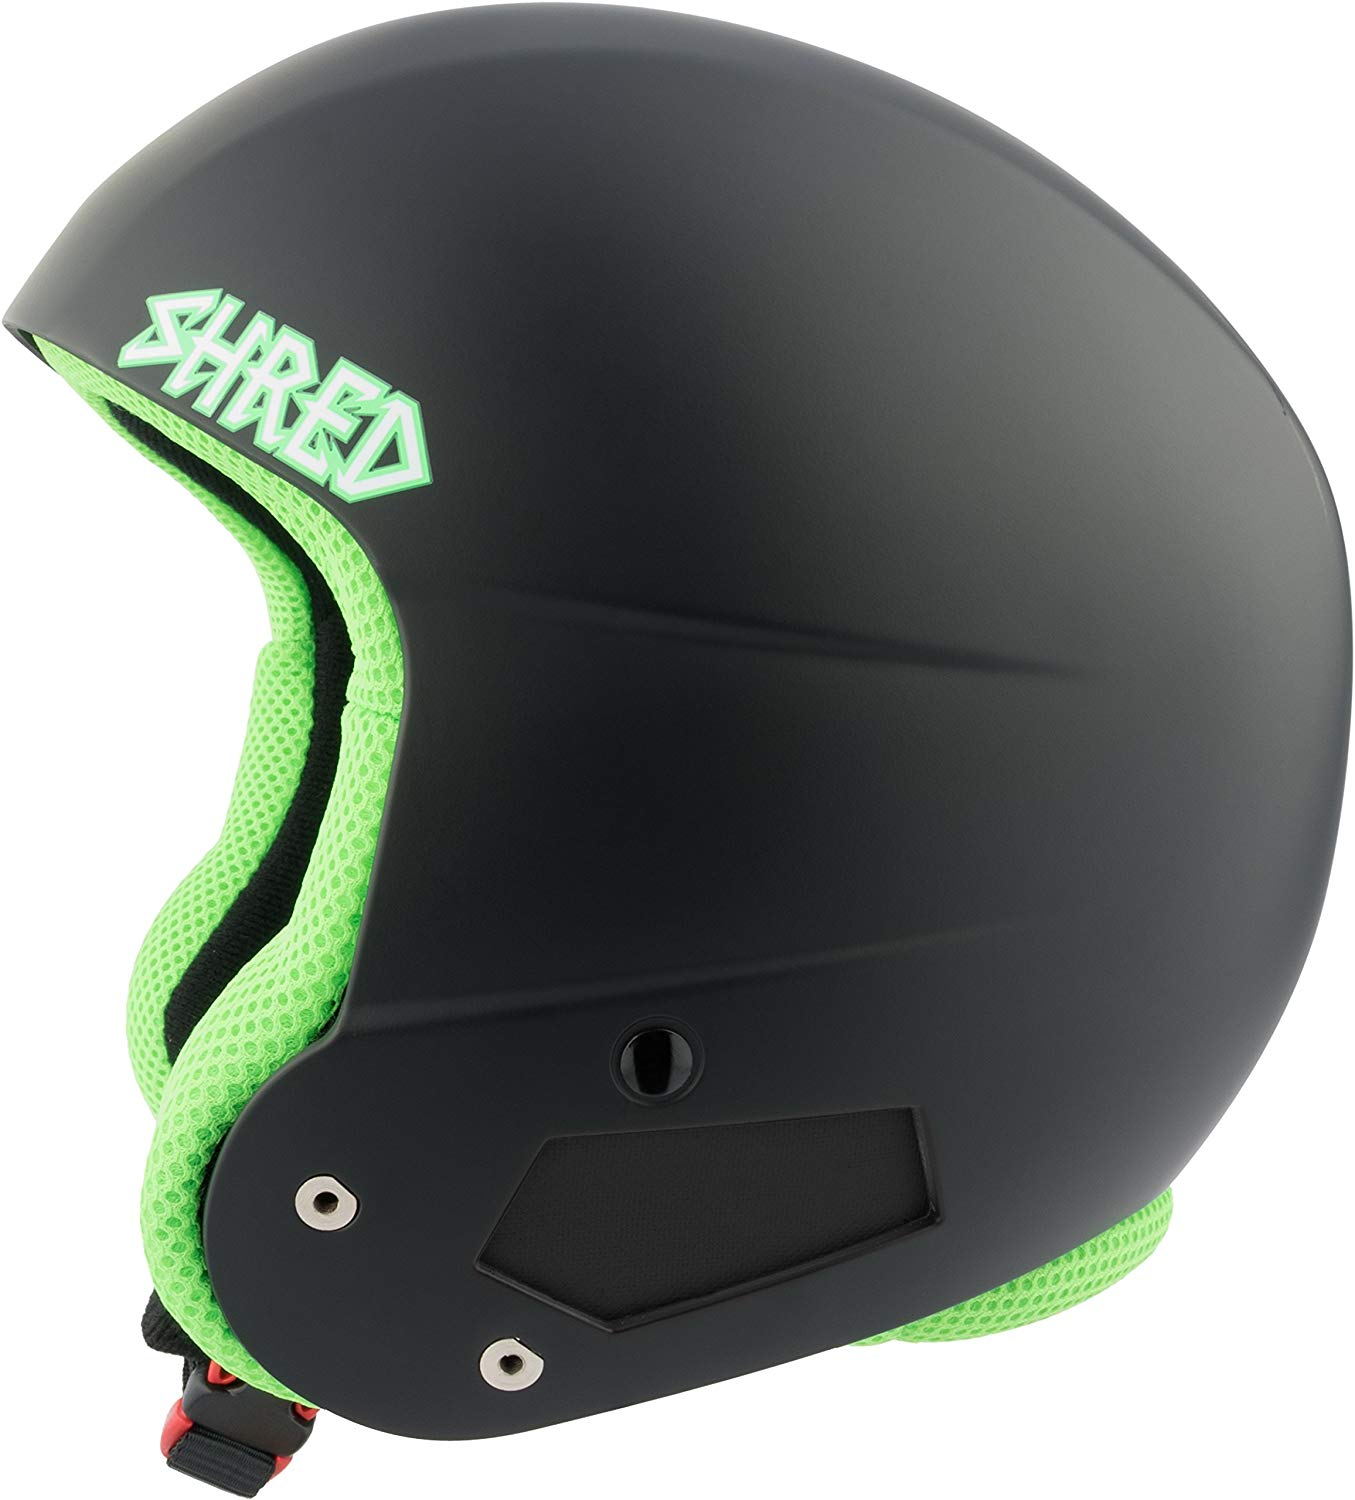 SHRED Brain Bucket Don Helmet, Black, Small/Medium